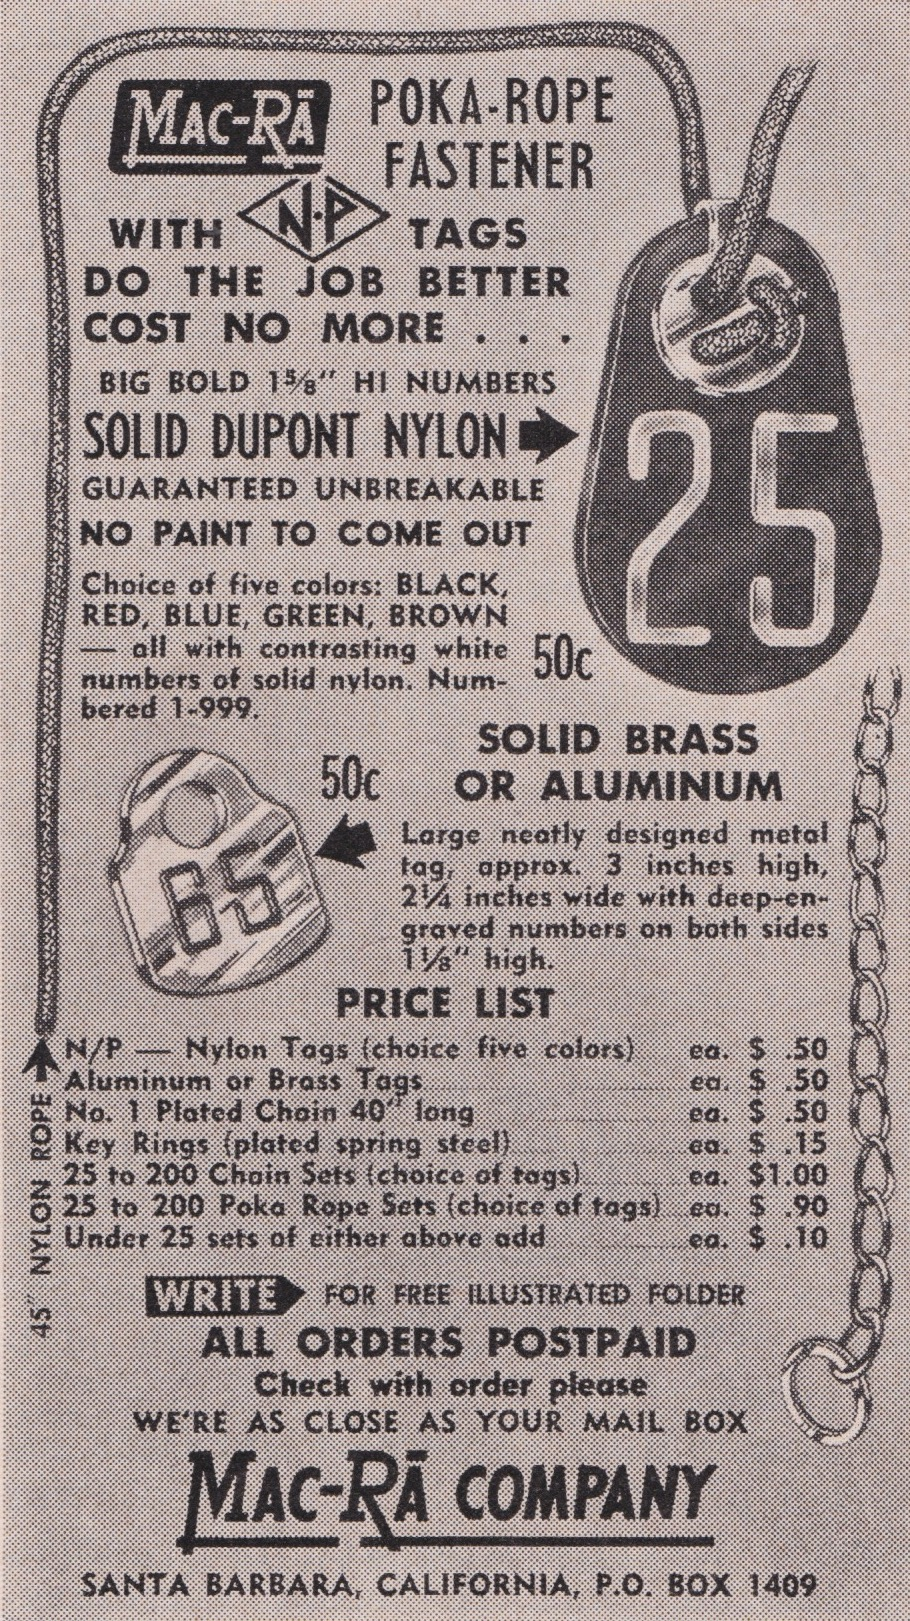 Early 1950's—Interesting that solid brass and nylon tags were same price.